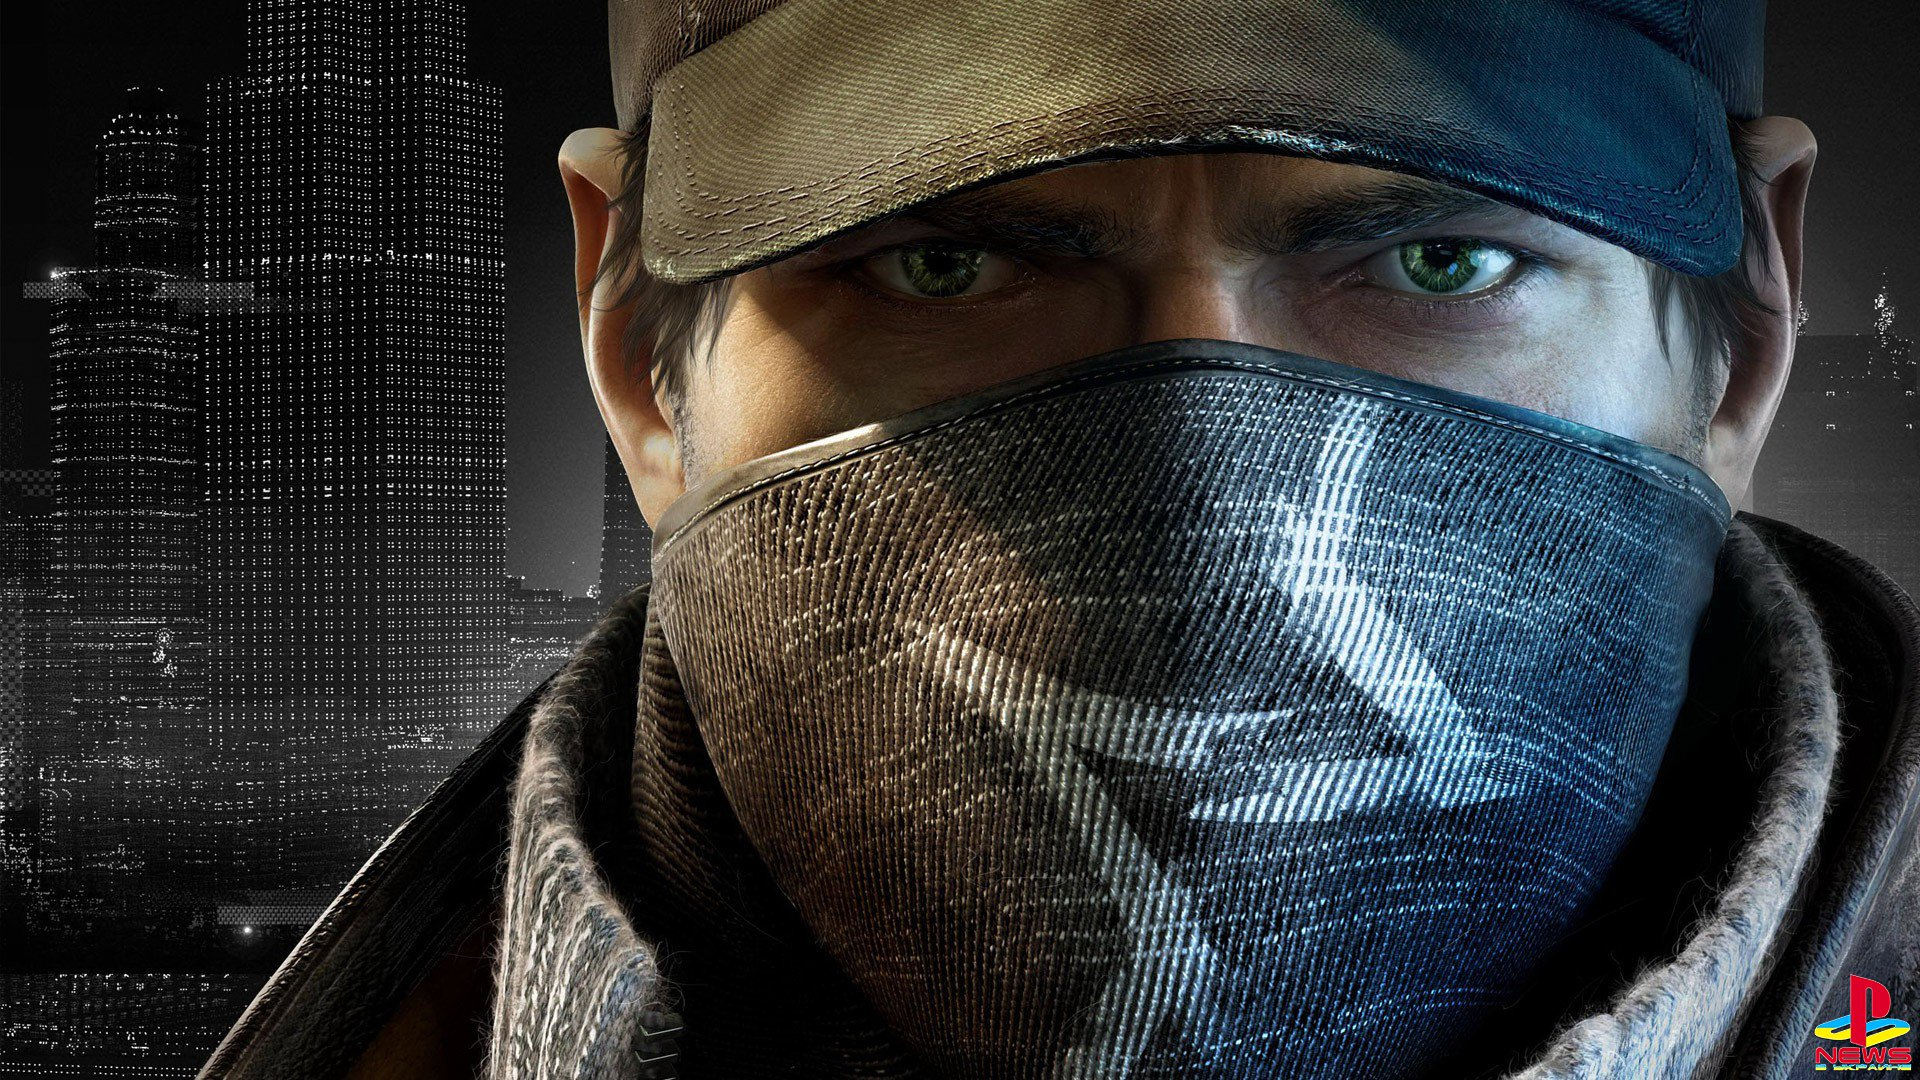 Сравнение версий Watch Dogs для PlayStation 4 и Xbox One